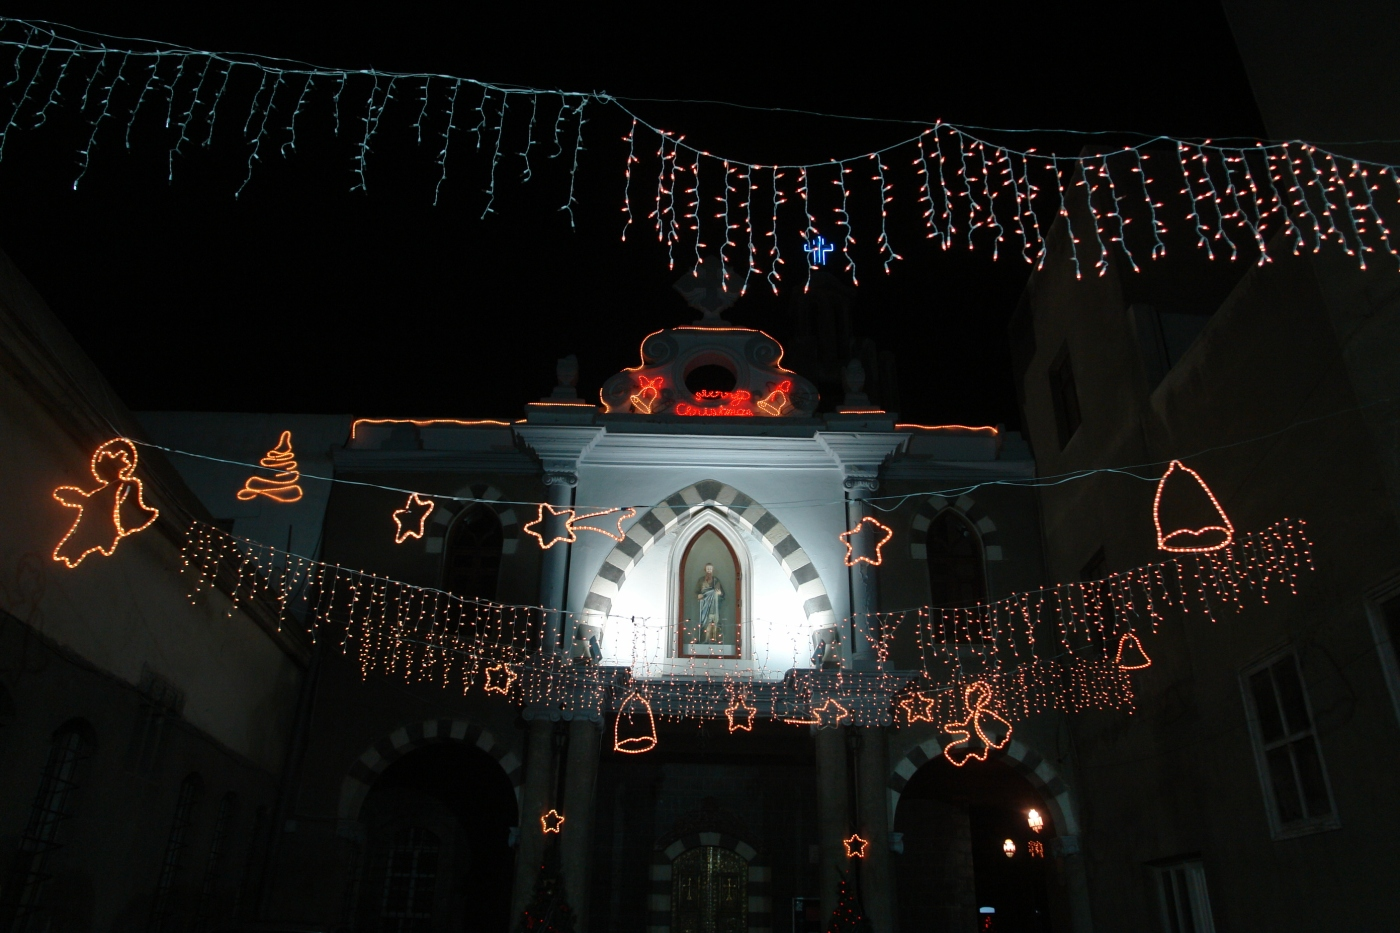 Christmas in Syria. PHOTO: Charles Roffey, shared on Flickr under CC BY-NC-SA 2.0